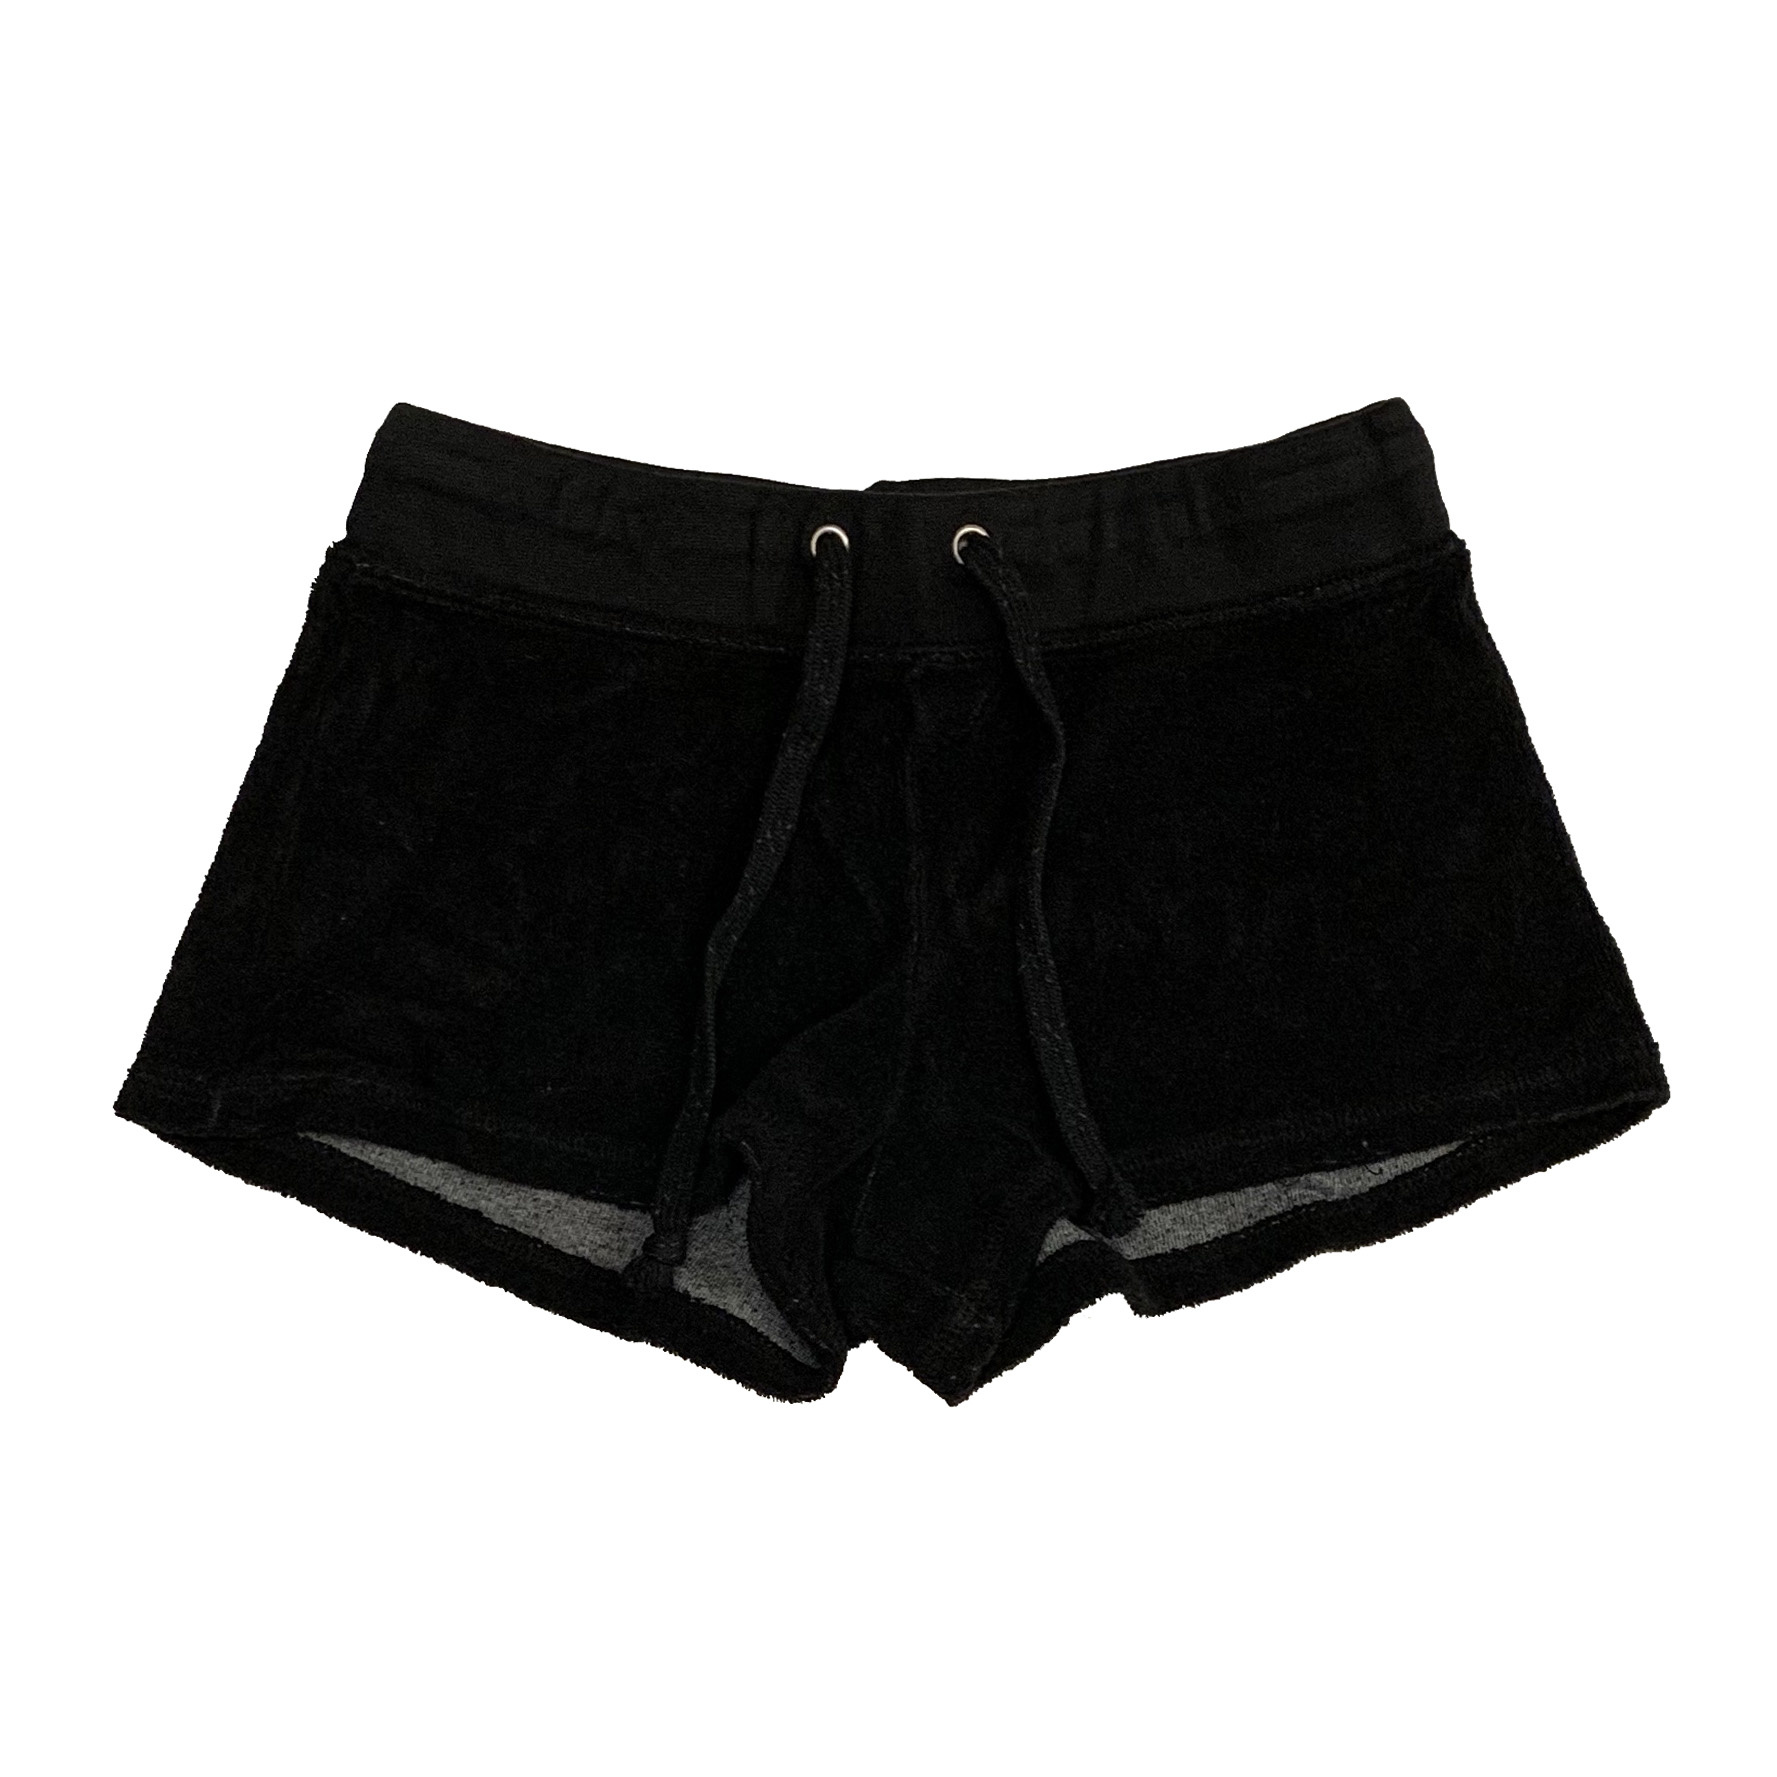 Project Riot Black Terry Cloth Shorts